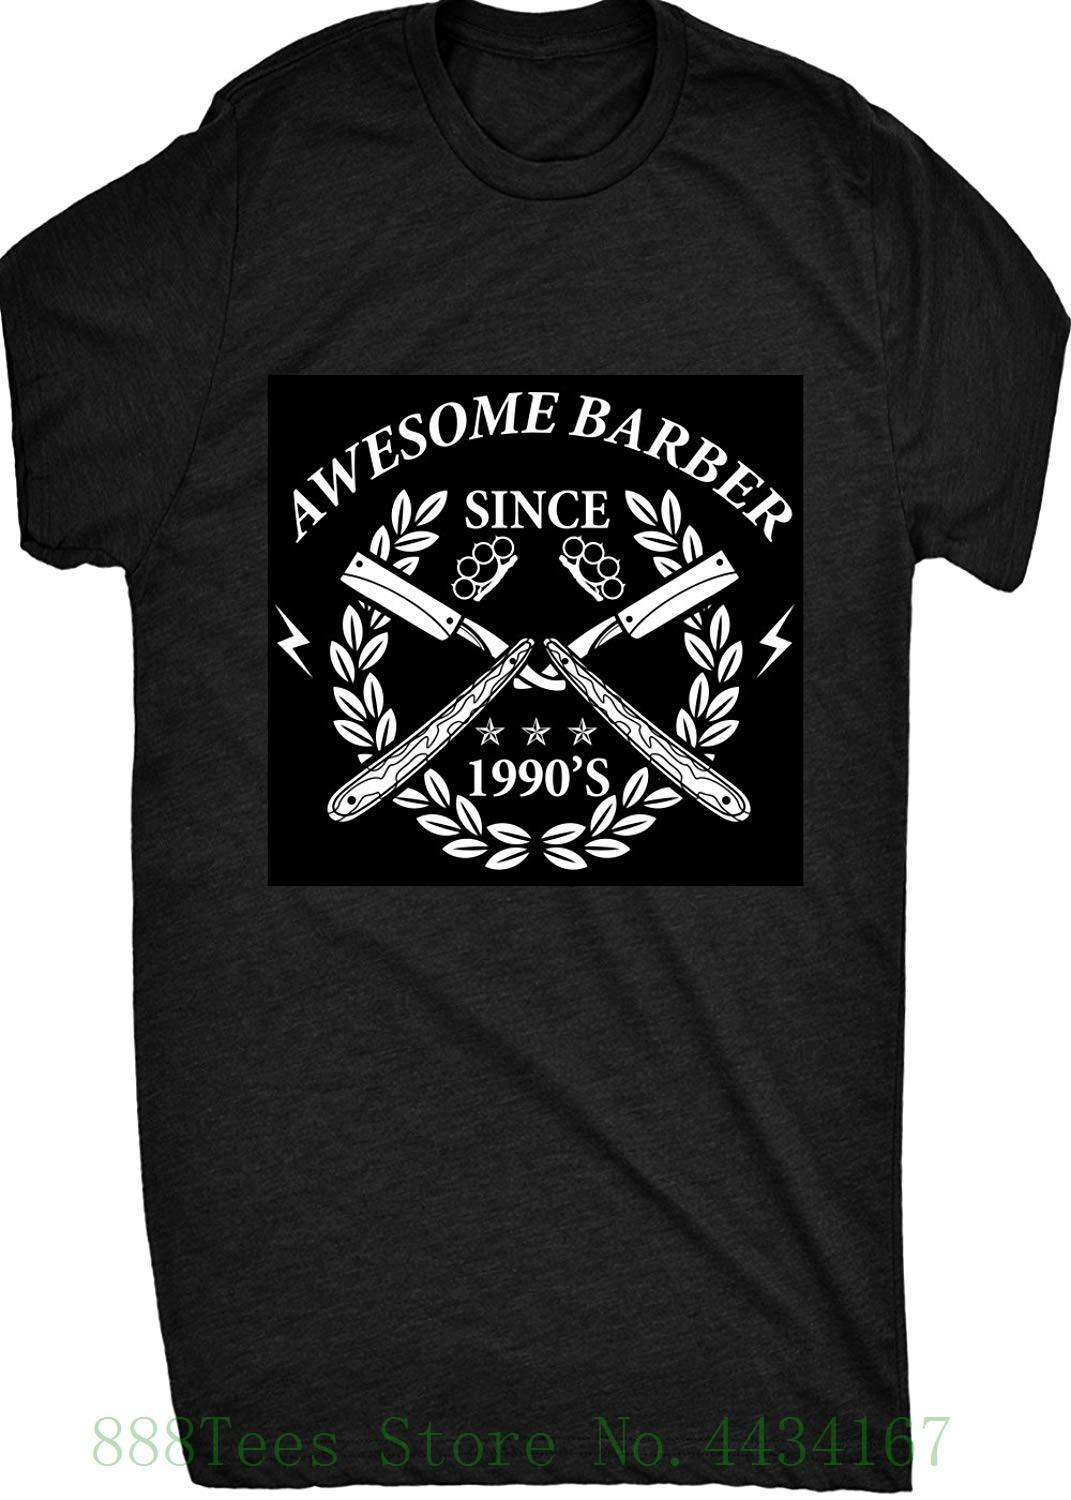 Awesome Barber Since 1990 Mens T Shirt Men's High Quality Custom Printed Tops Hipster Tees